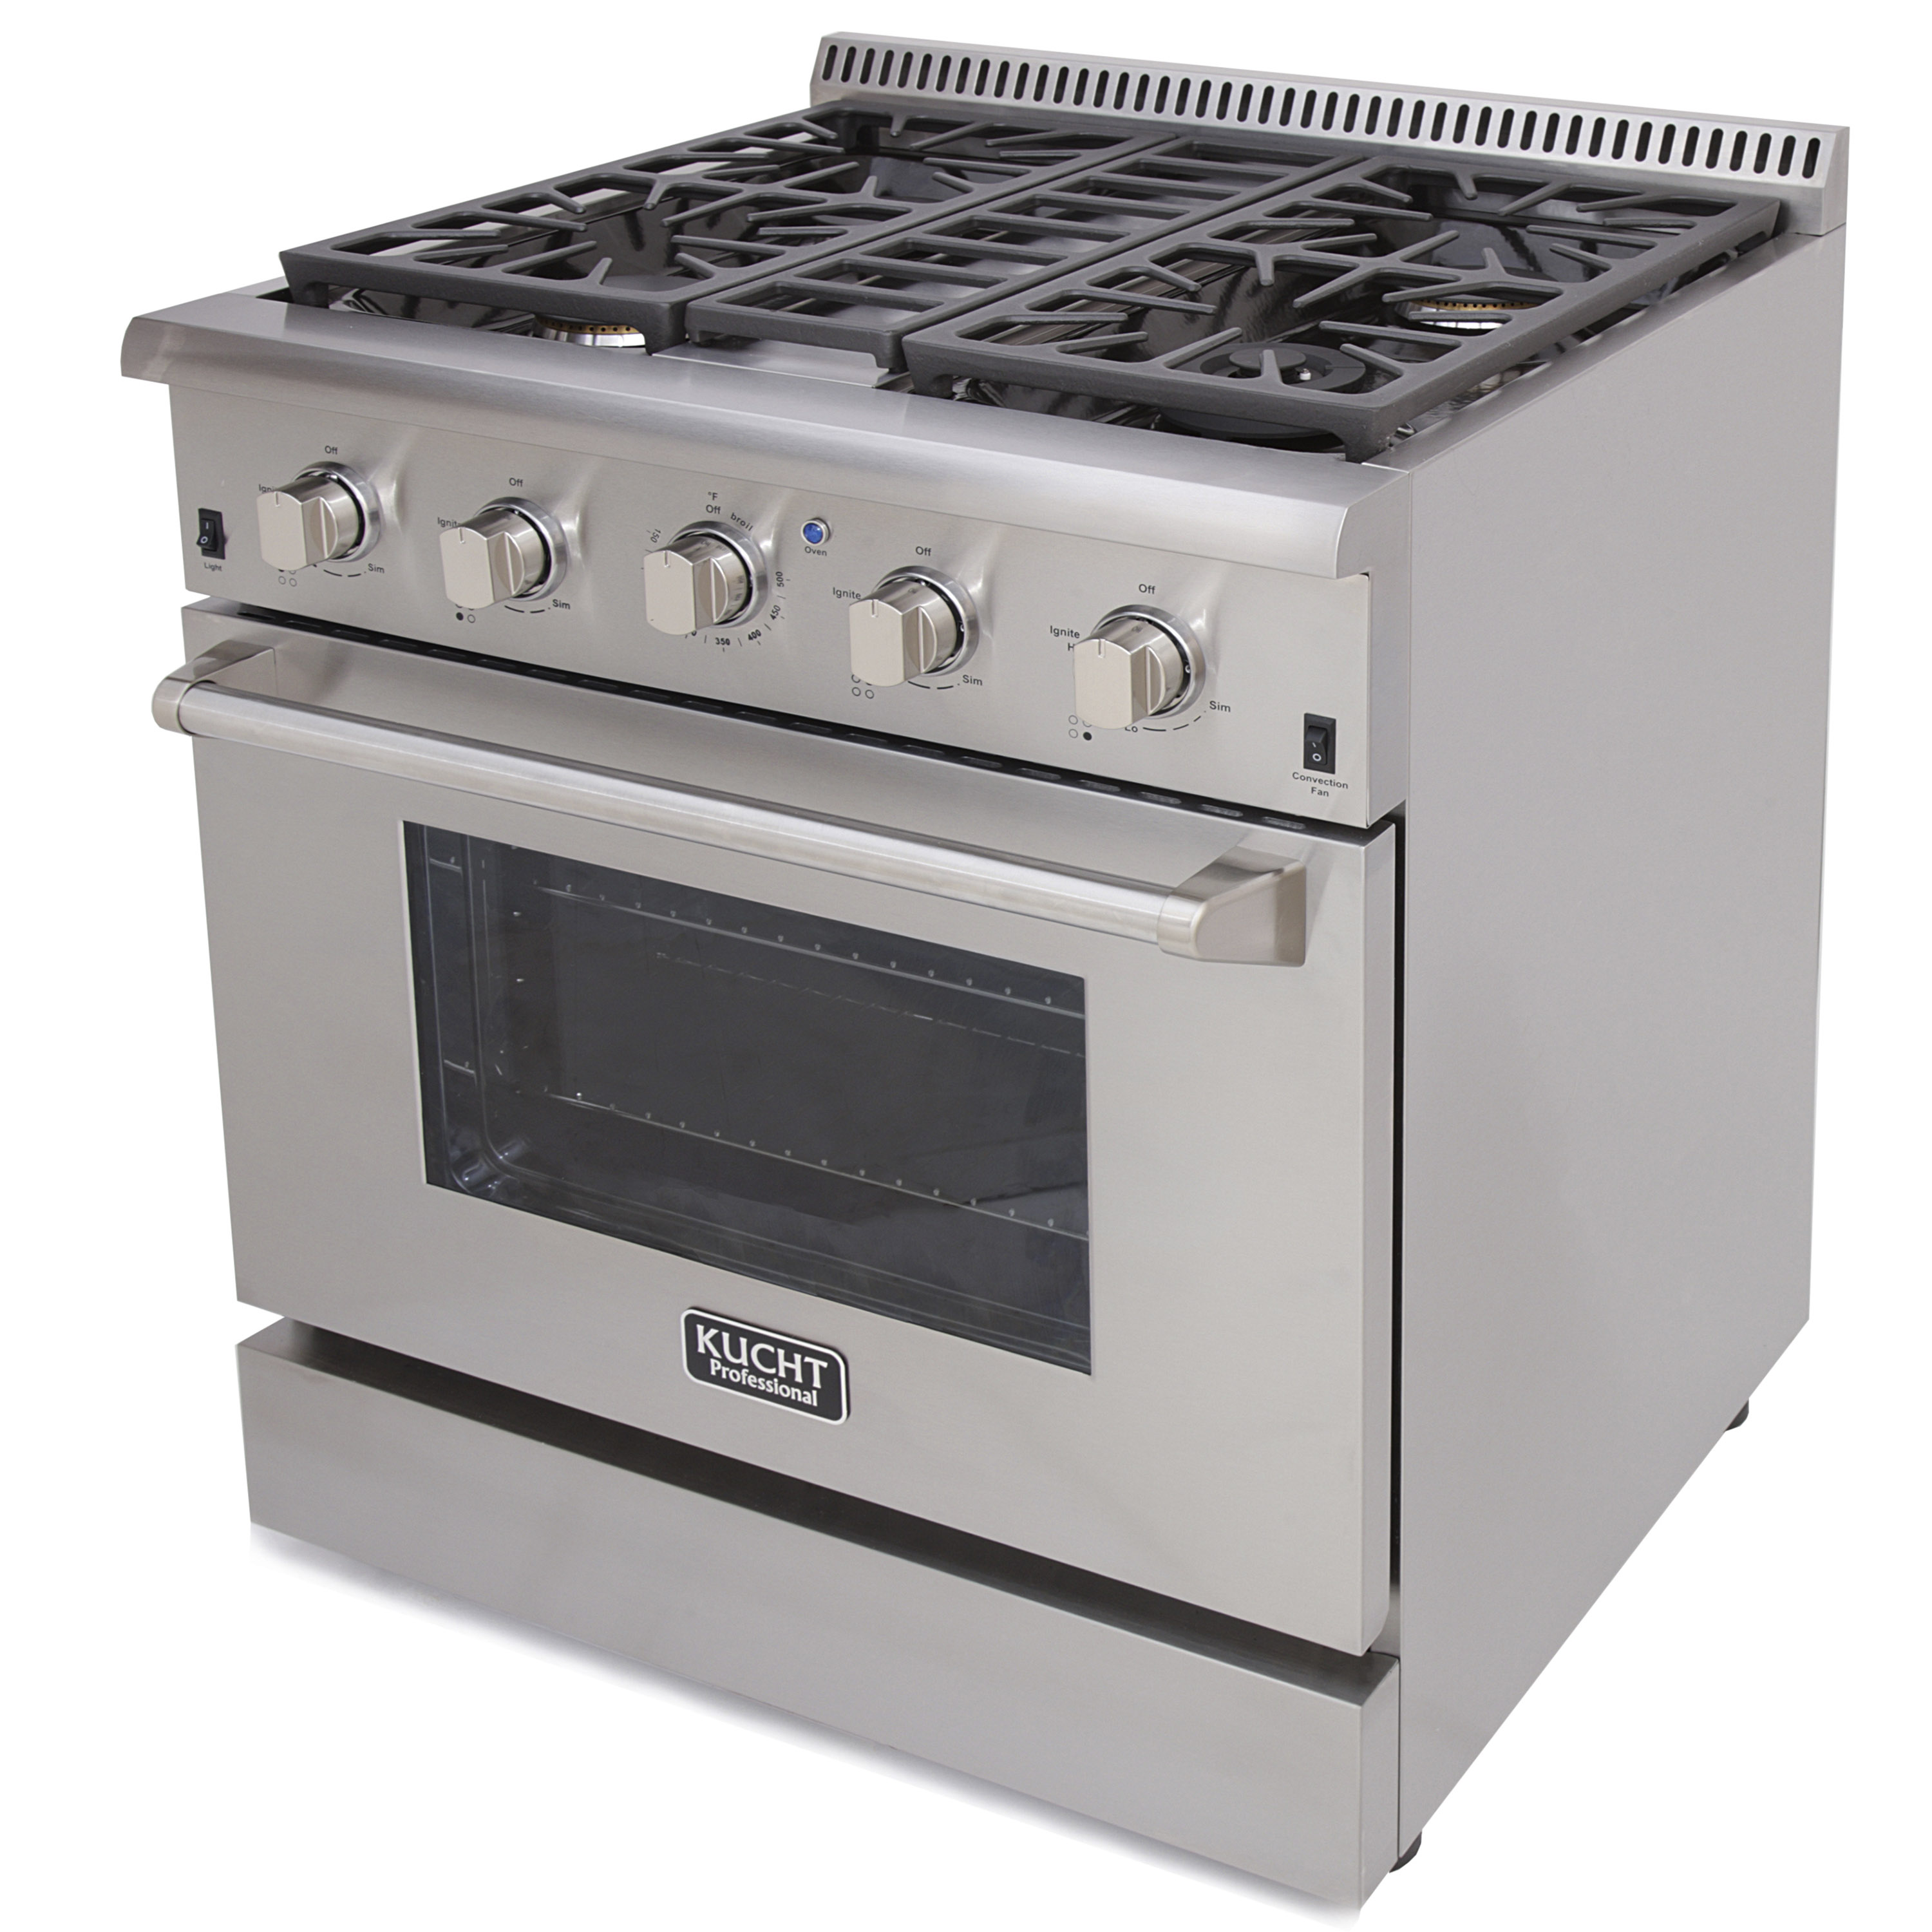 KUCHT 30 Professional Gas Range KRG3080U Stainless Steel Convection Oven